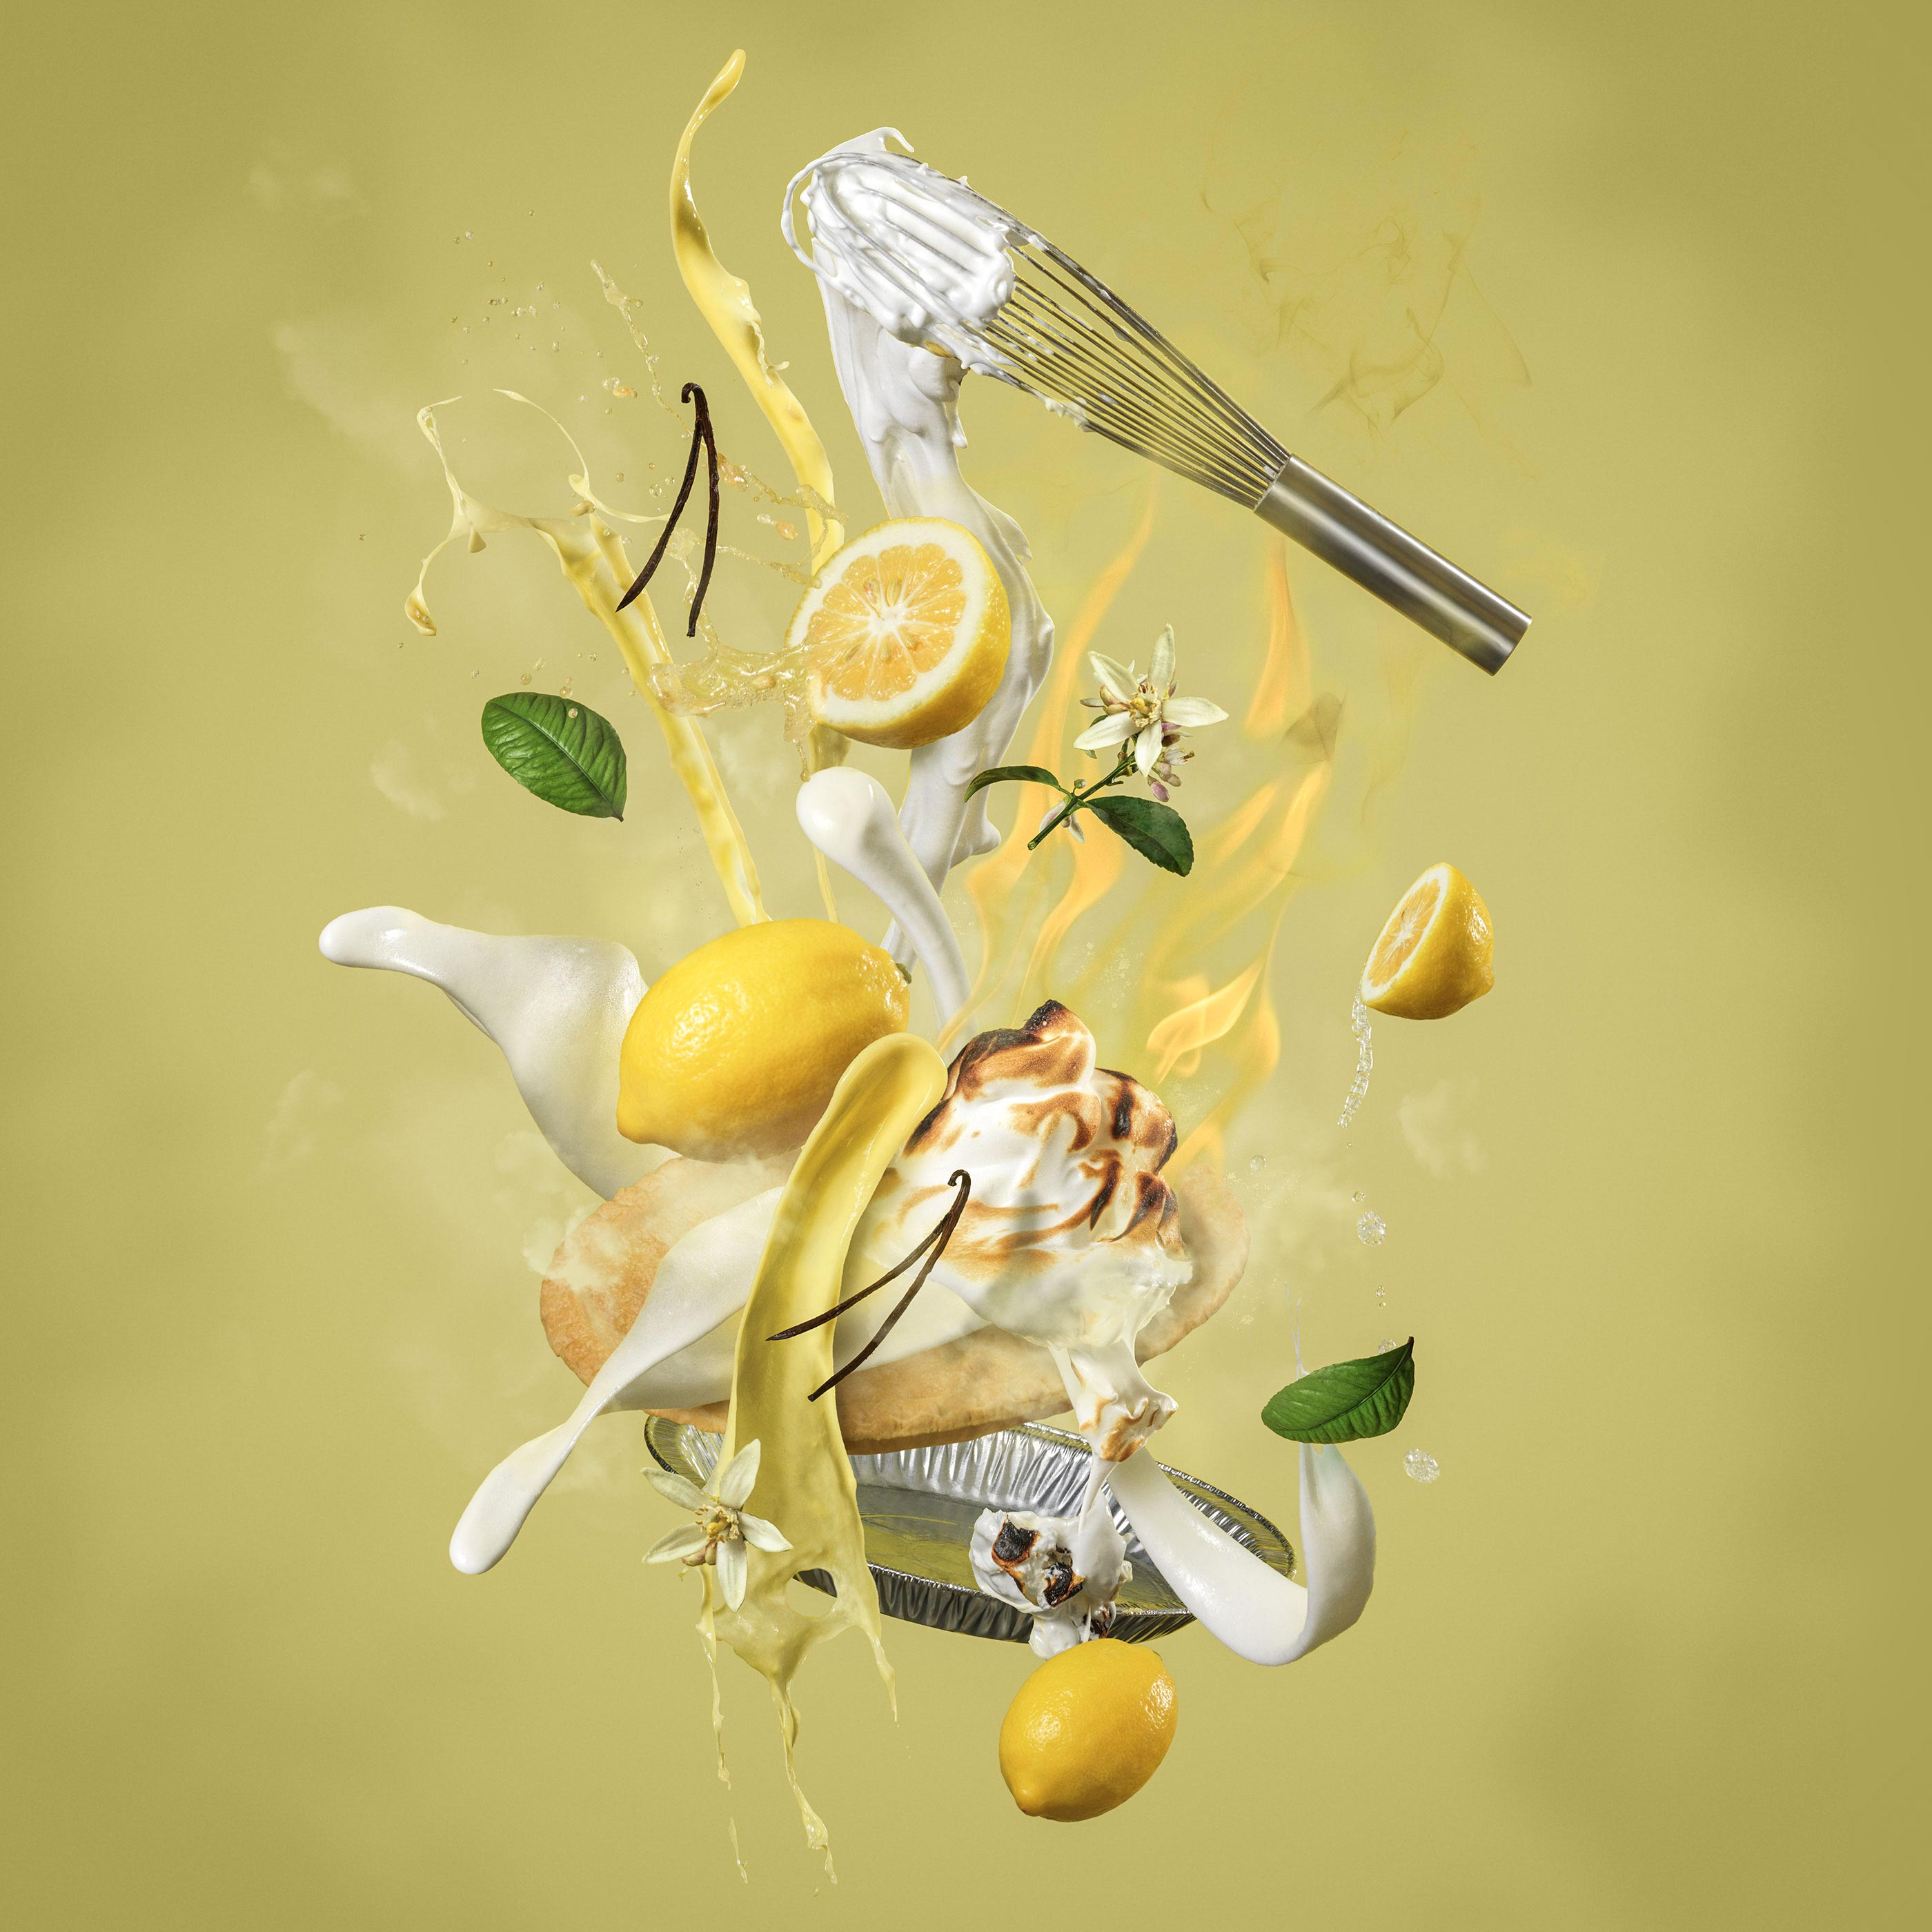 Lemon Meringue Pie Splash | Steve Hansen Seattle Food Photographer